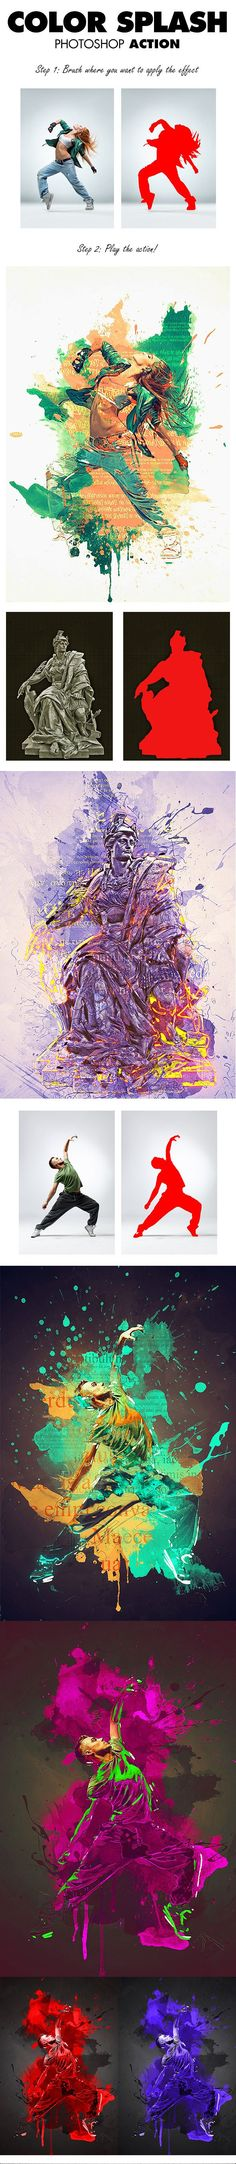 18-Color Splash Photoshop Action http://jrstudioweb.com/diseno-grafico/diseno-de-logotipos/